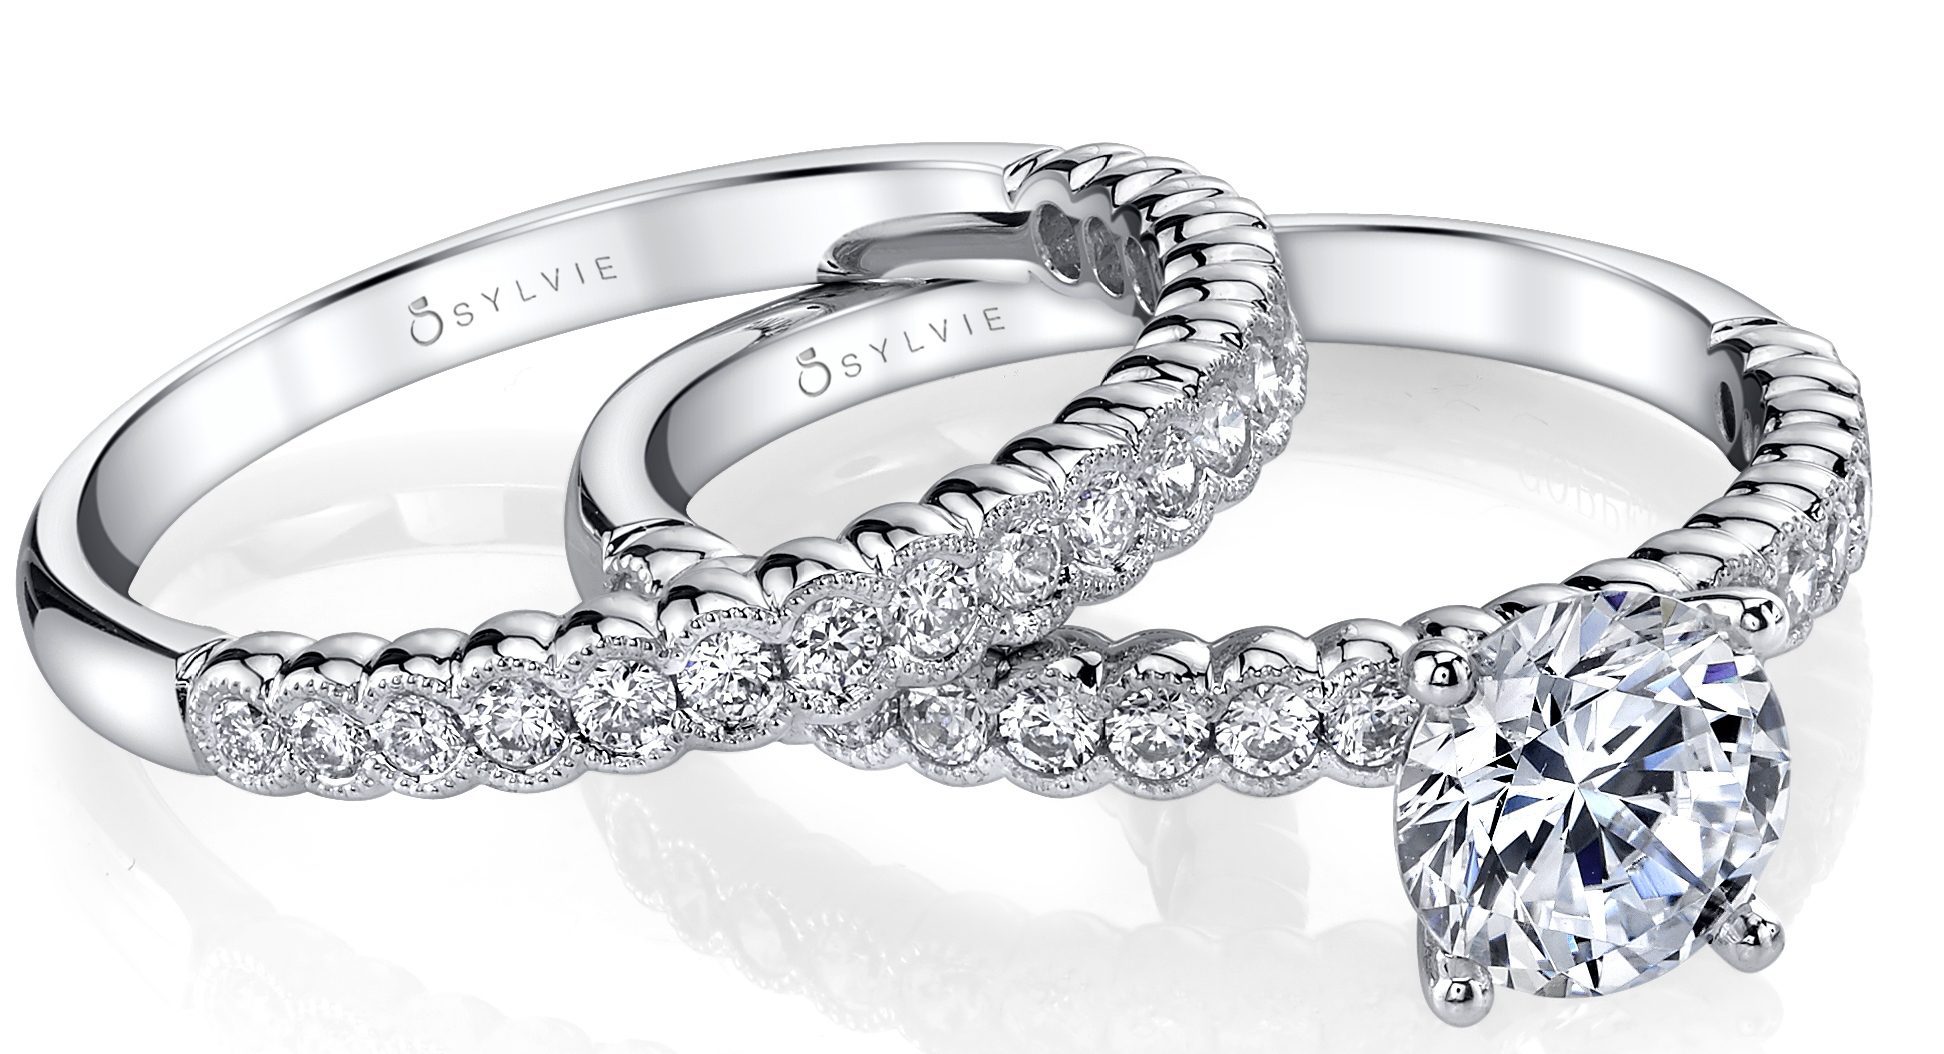 Sylvie Collection engagement ring and wedding band | JCK On Your Market